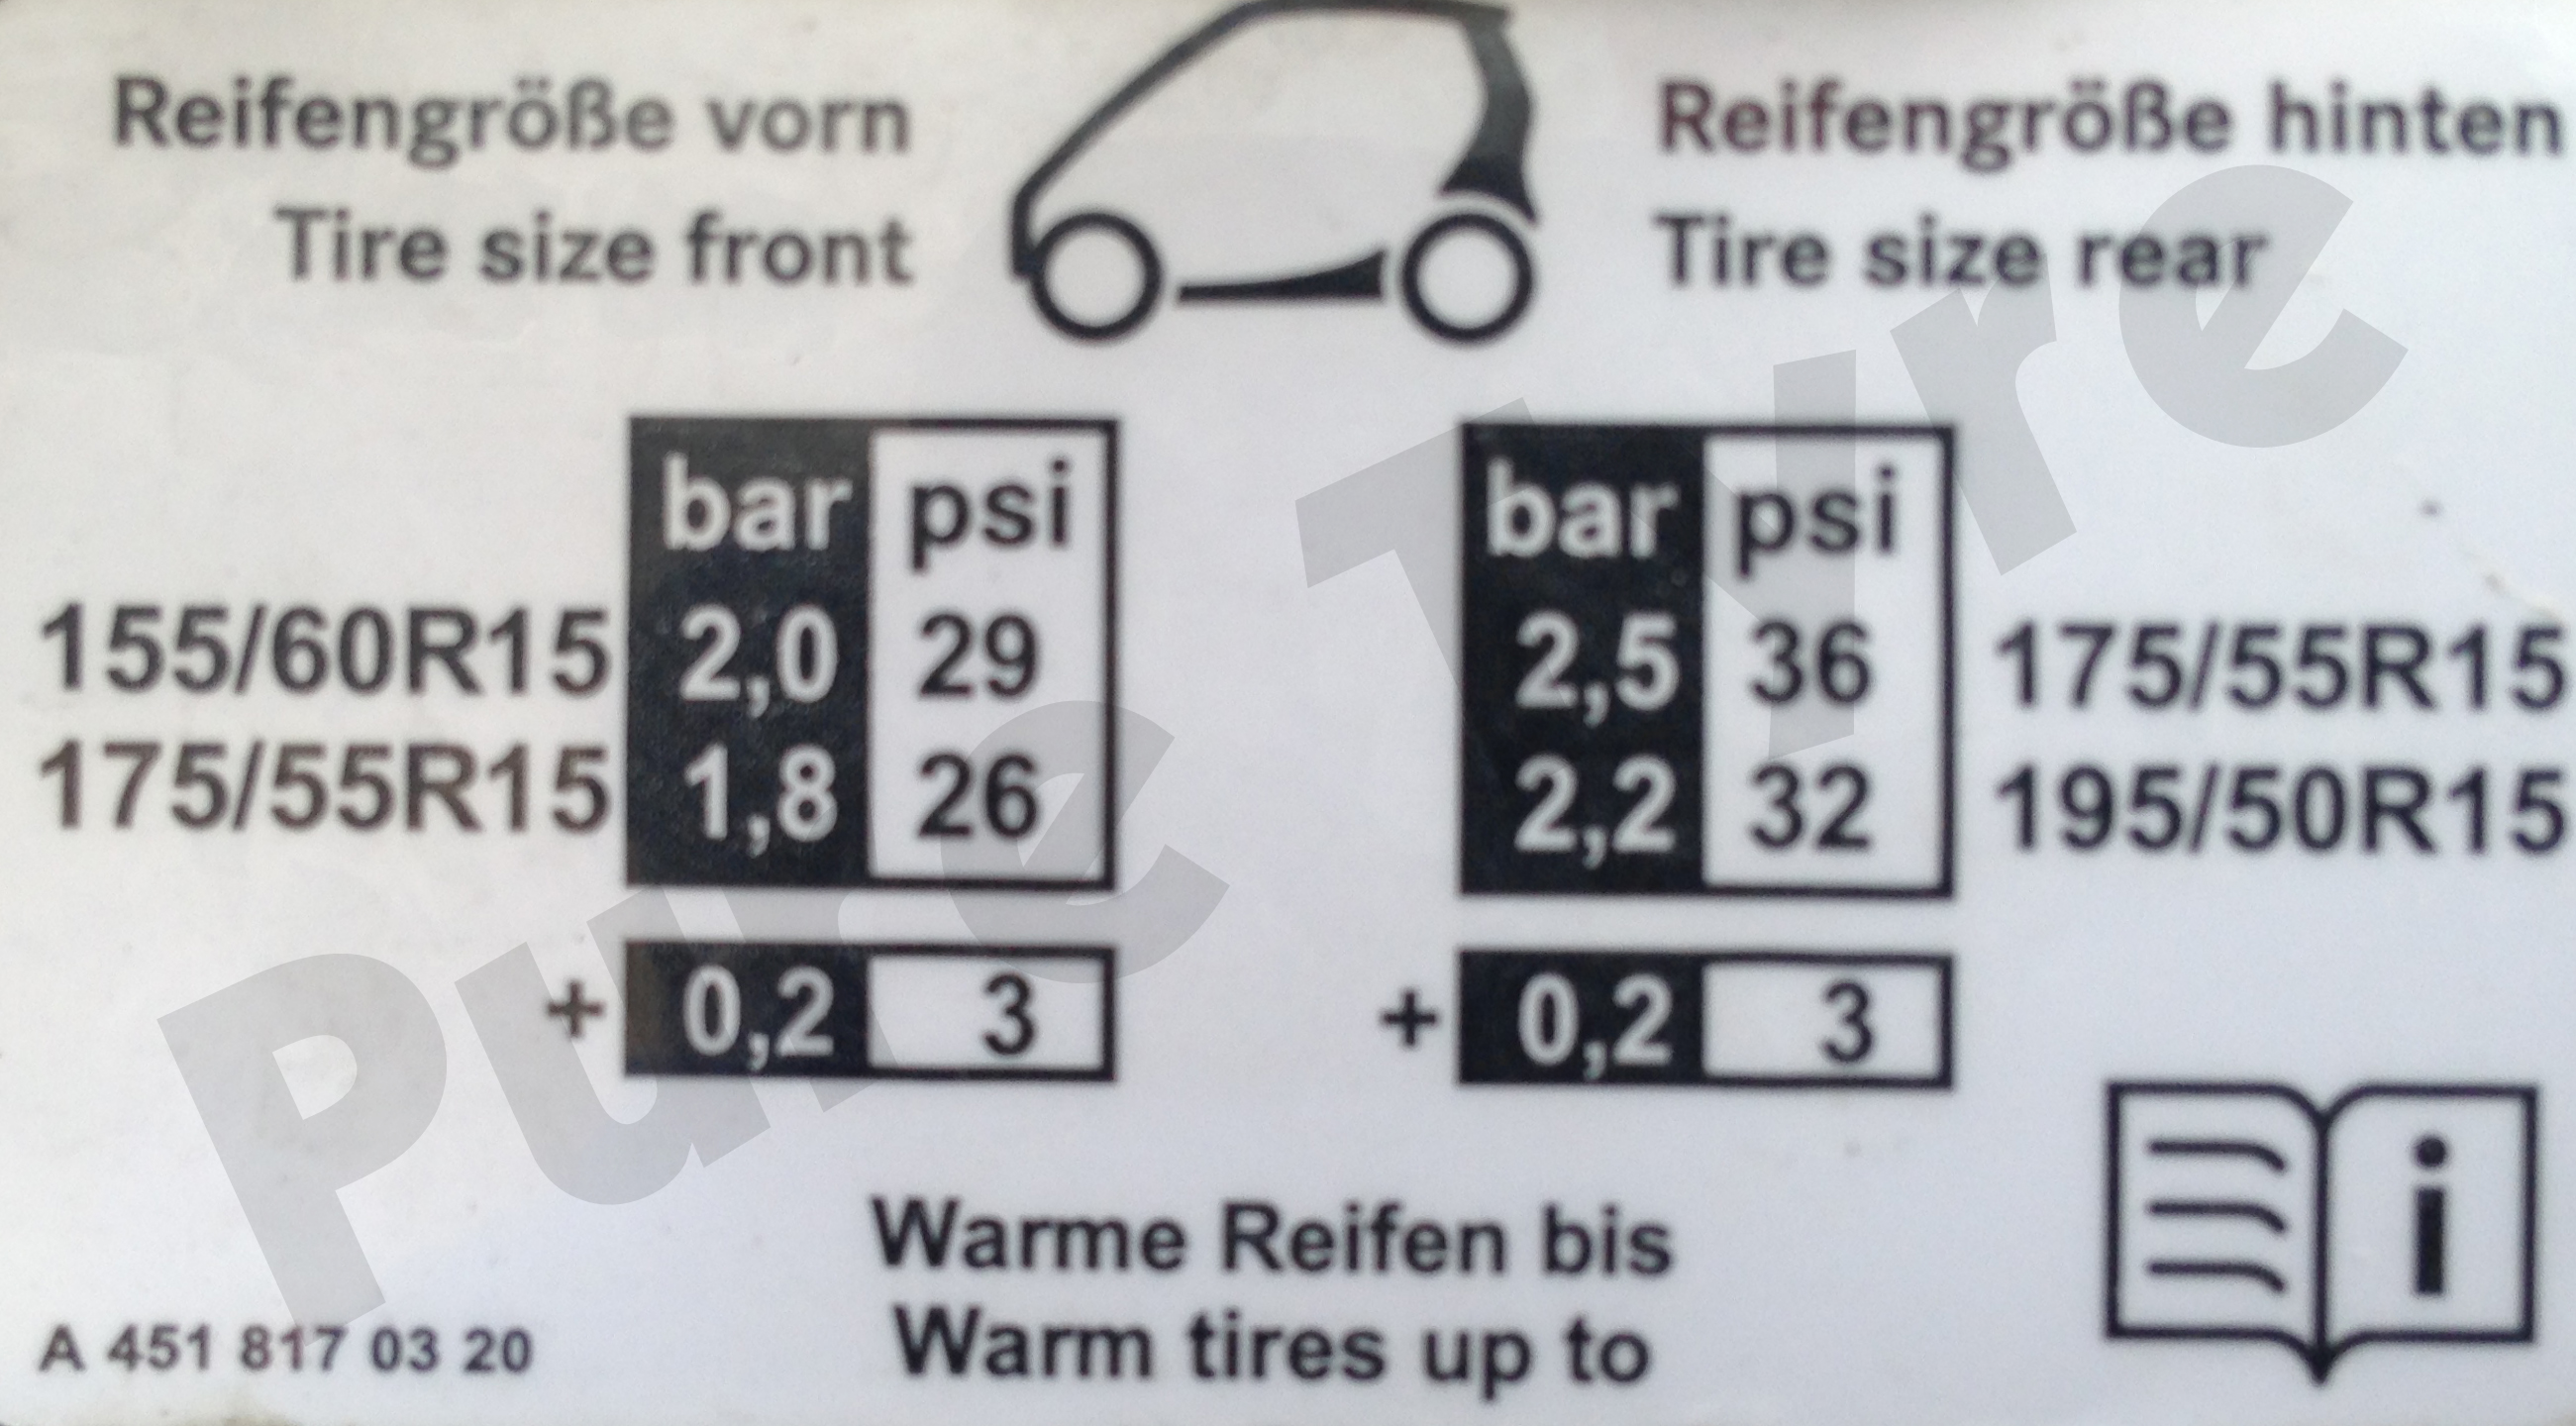 Car tyre pressure conversion chart images free any chart examples tyre pressure conversion chart kpa images free any chart examples tyre pressure conversion chart kpa to nvjuhfo Images